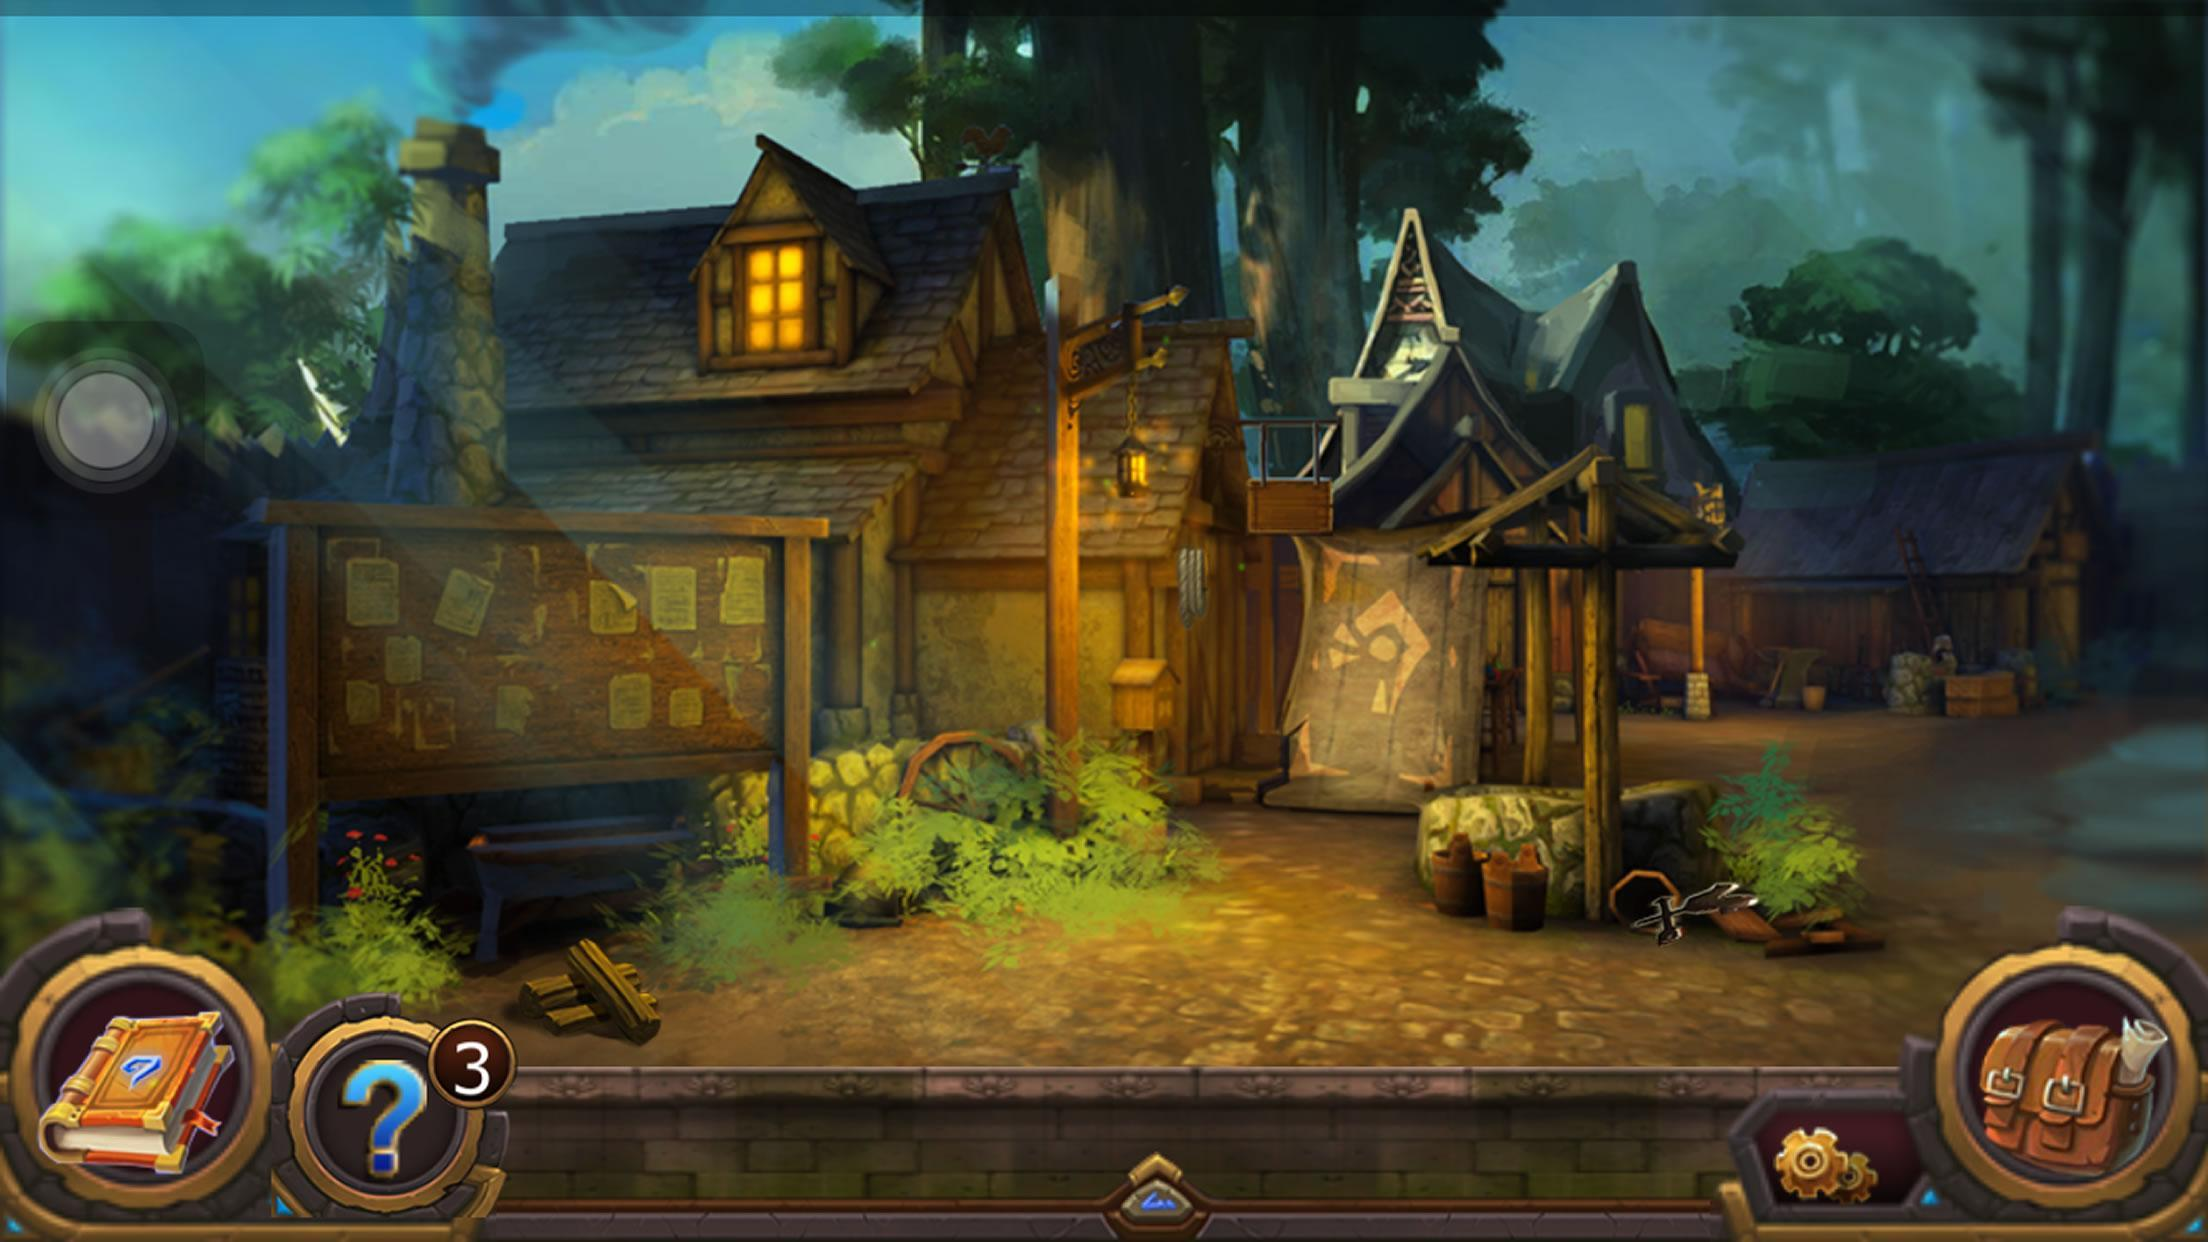 android games room apk free download